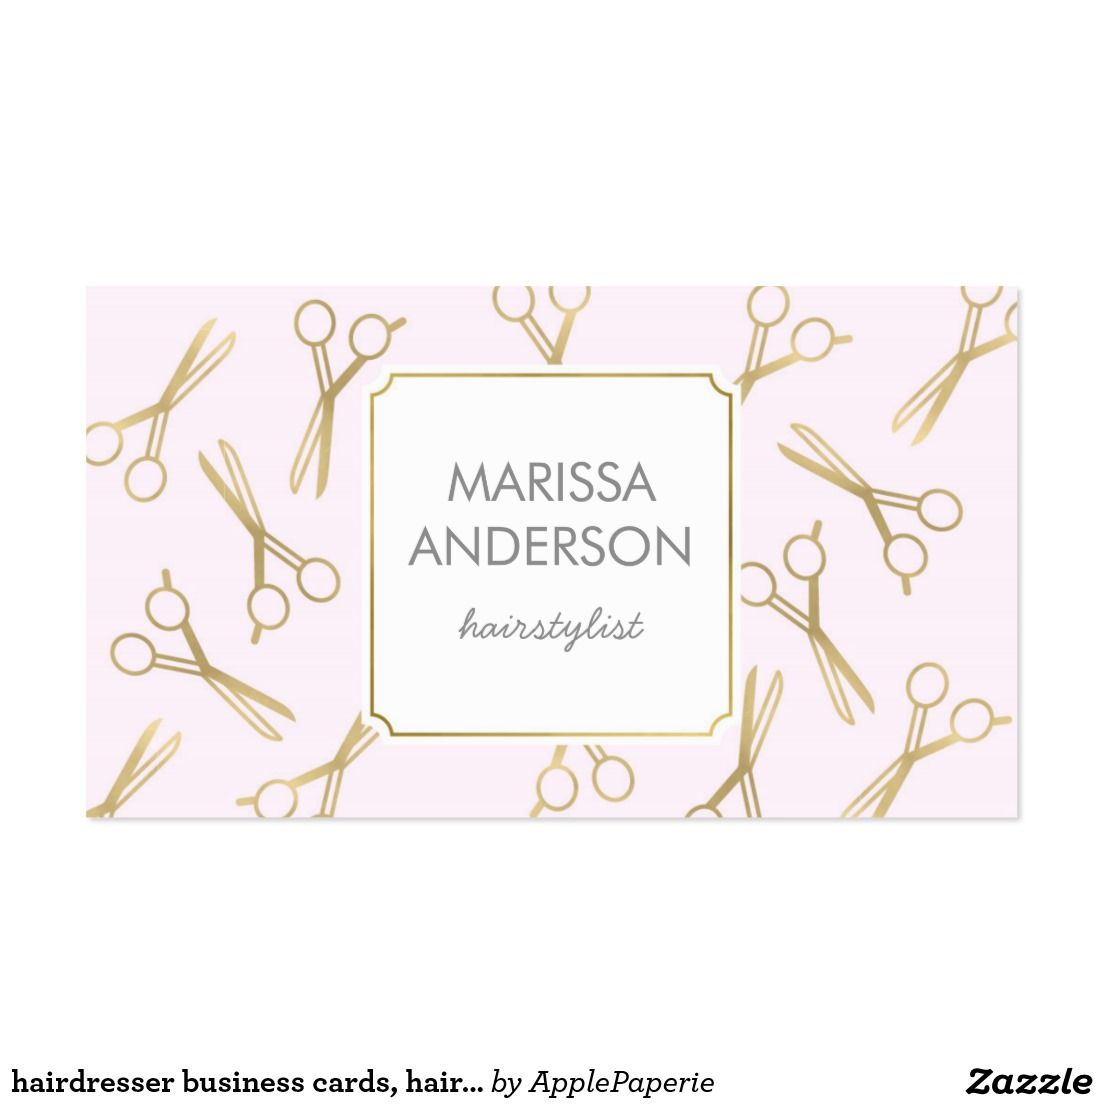 hairdresser business cards, hairstylist, makeup business card ...